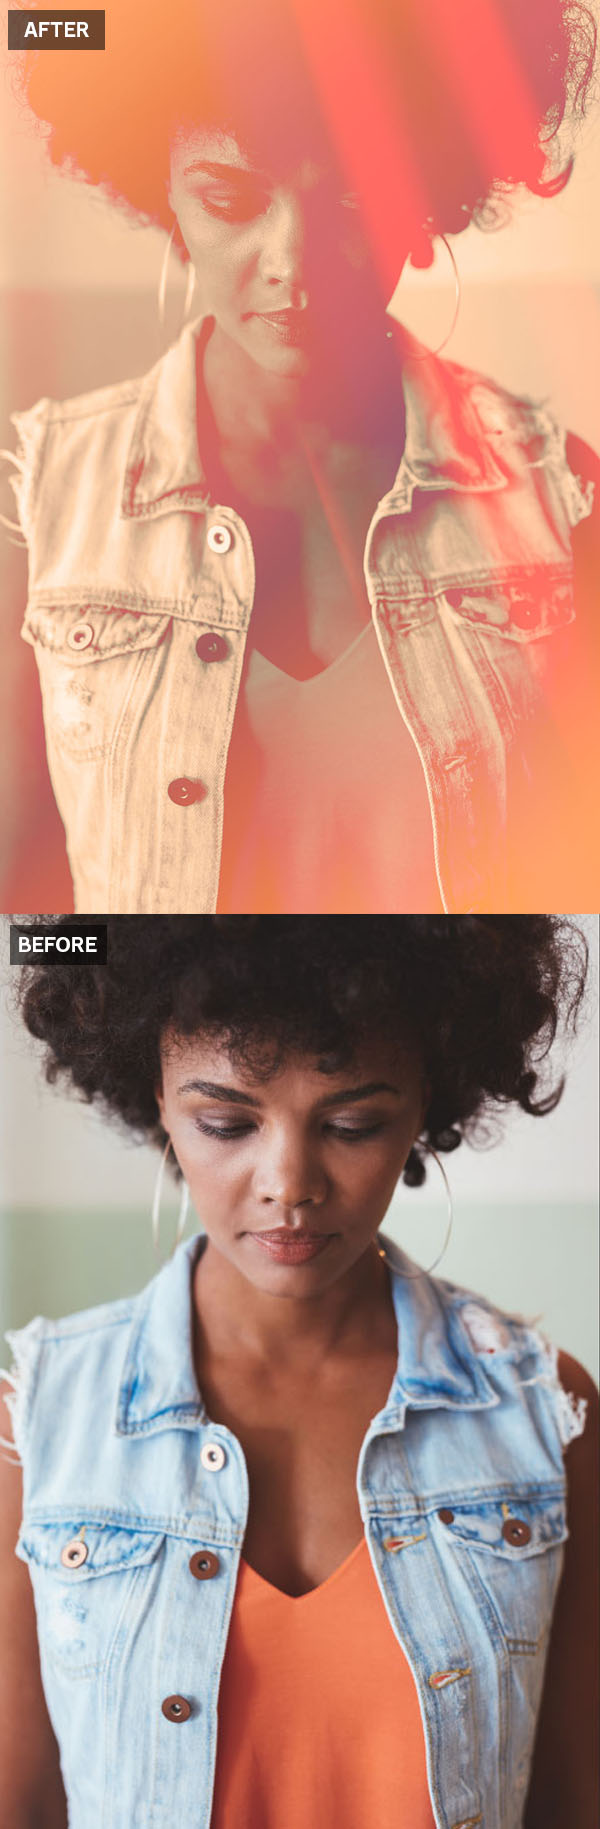 How to Create a Light Leak Photoshop Color Effect